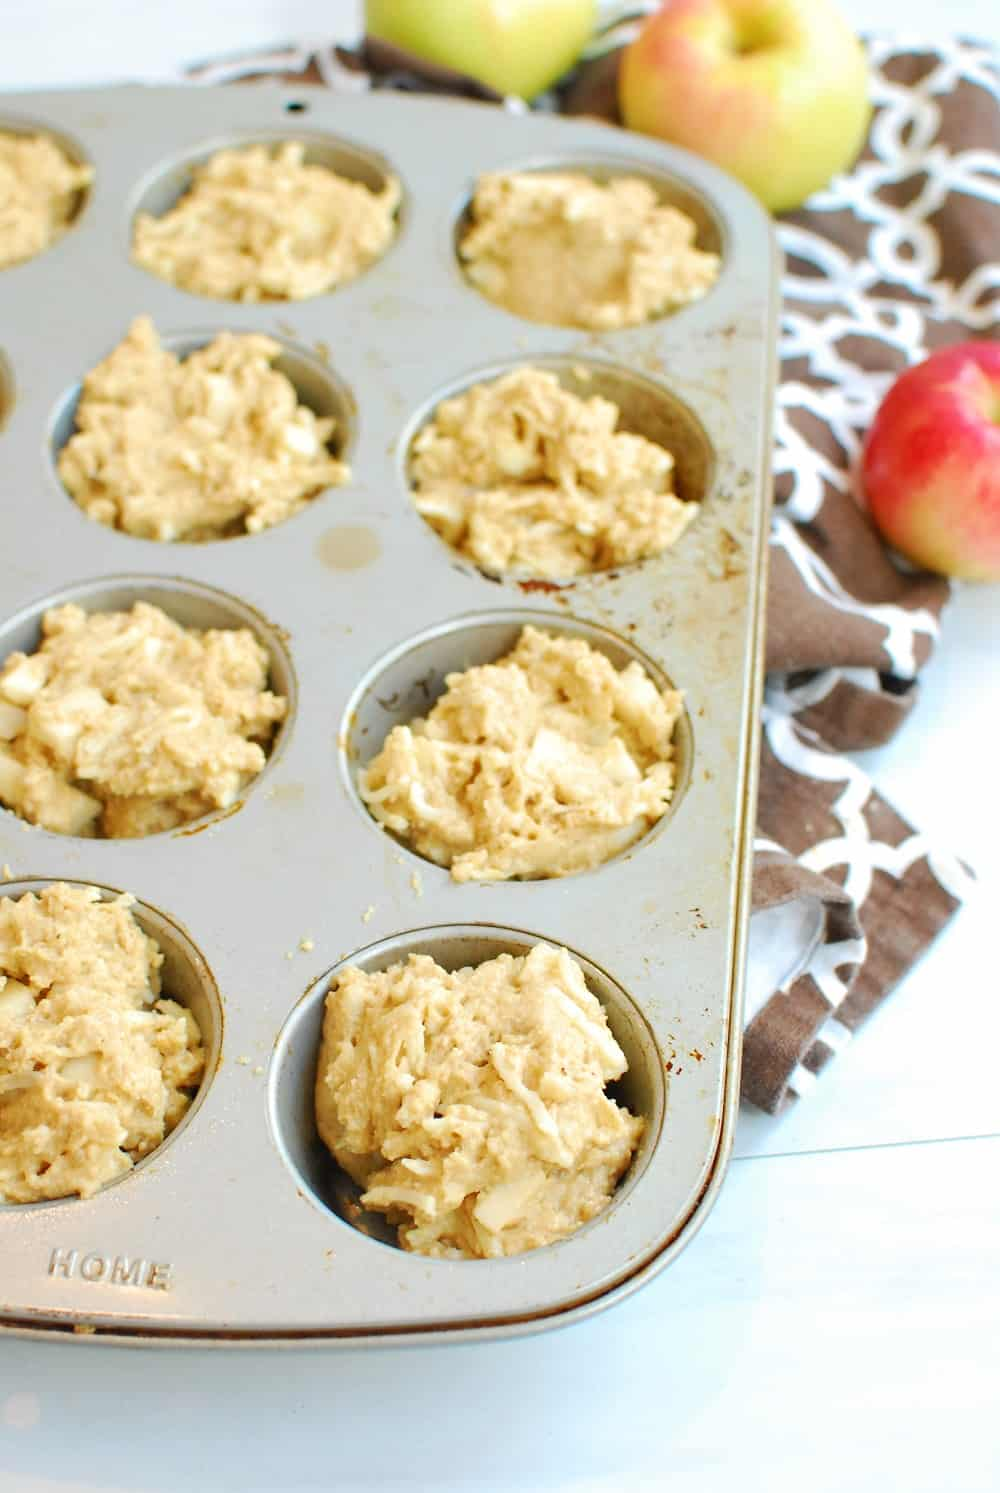 Muffin batter poured into a 12-count muffin tin.